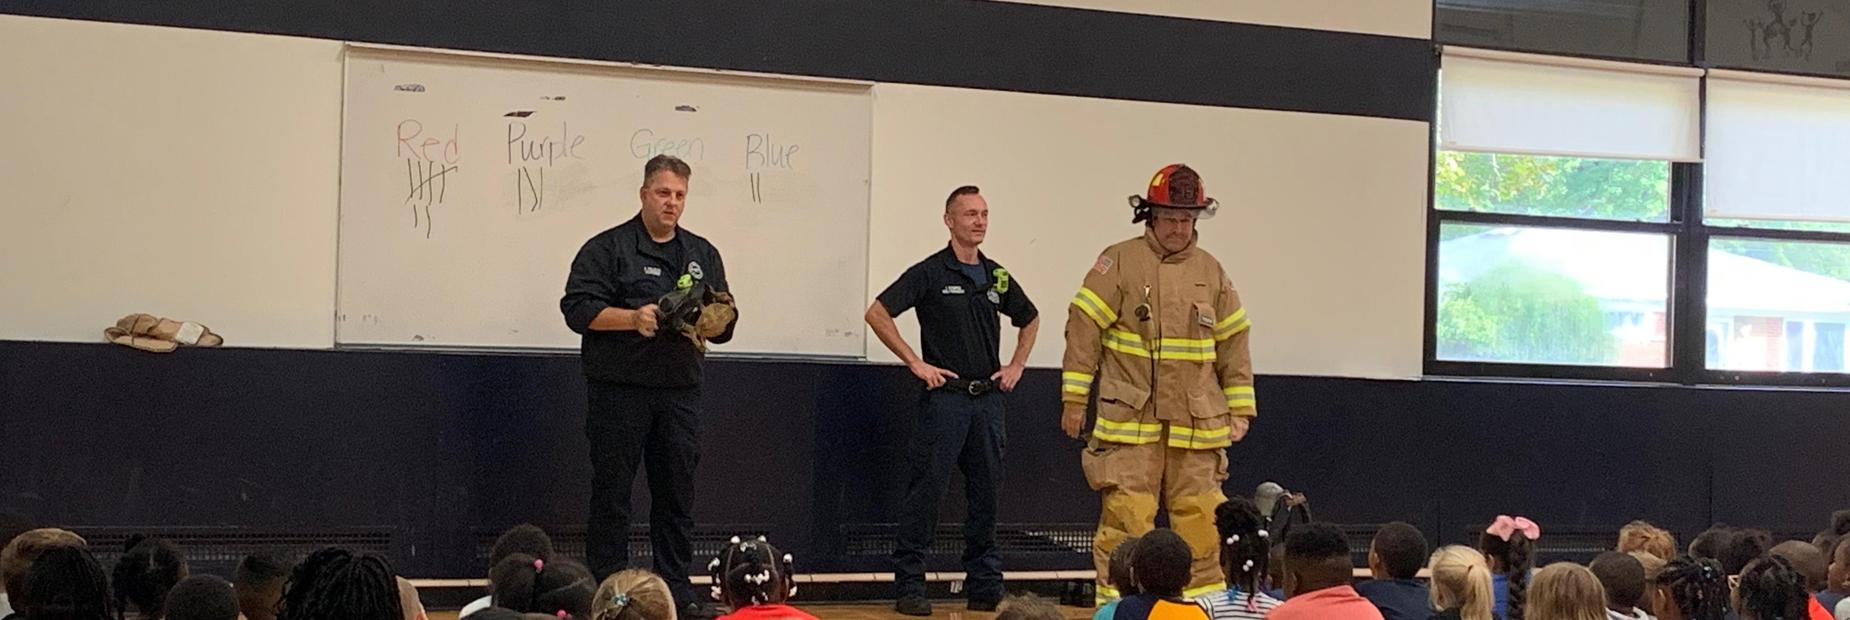 Mr. Skowronski dressed as a firefighter during our Fire Safety Assembly.